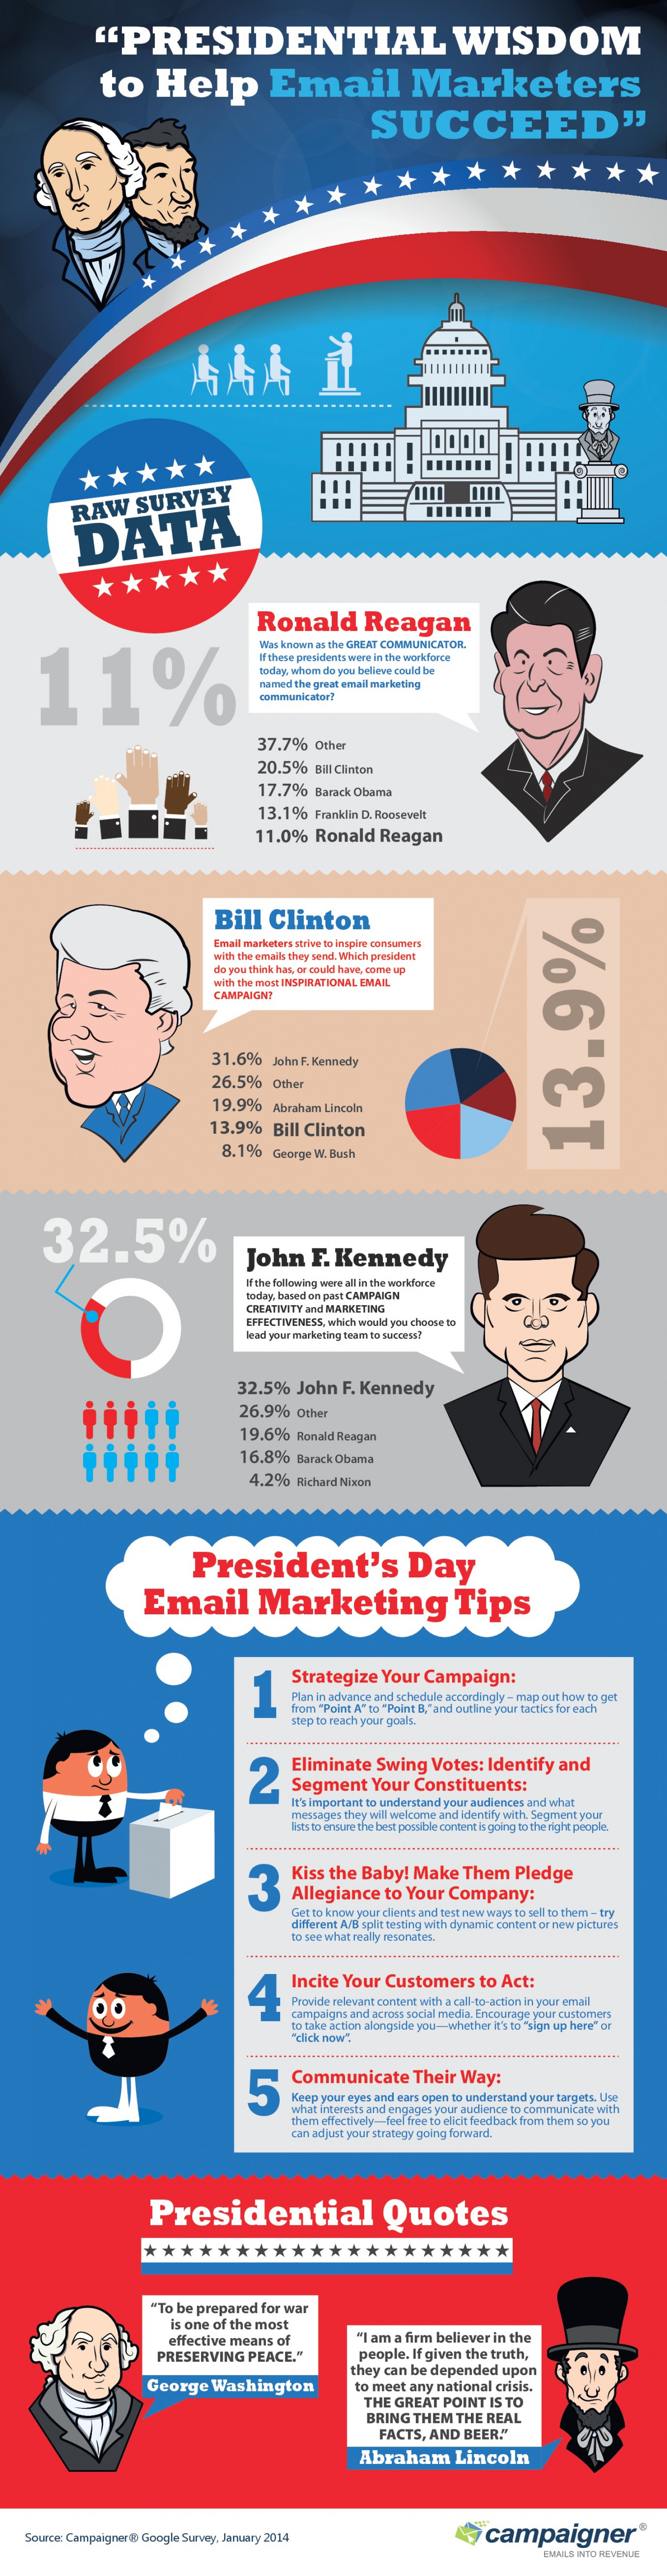 Presidential Wisdom To Help Email Marketers Succeed [Infographic]